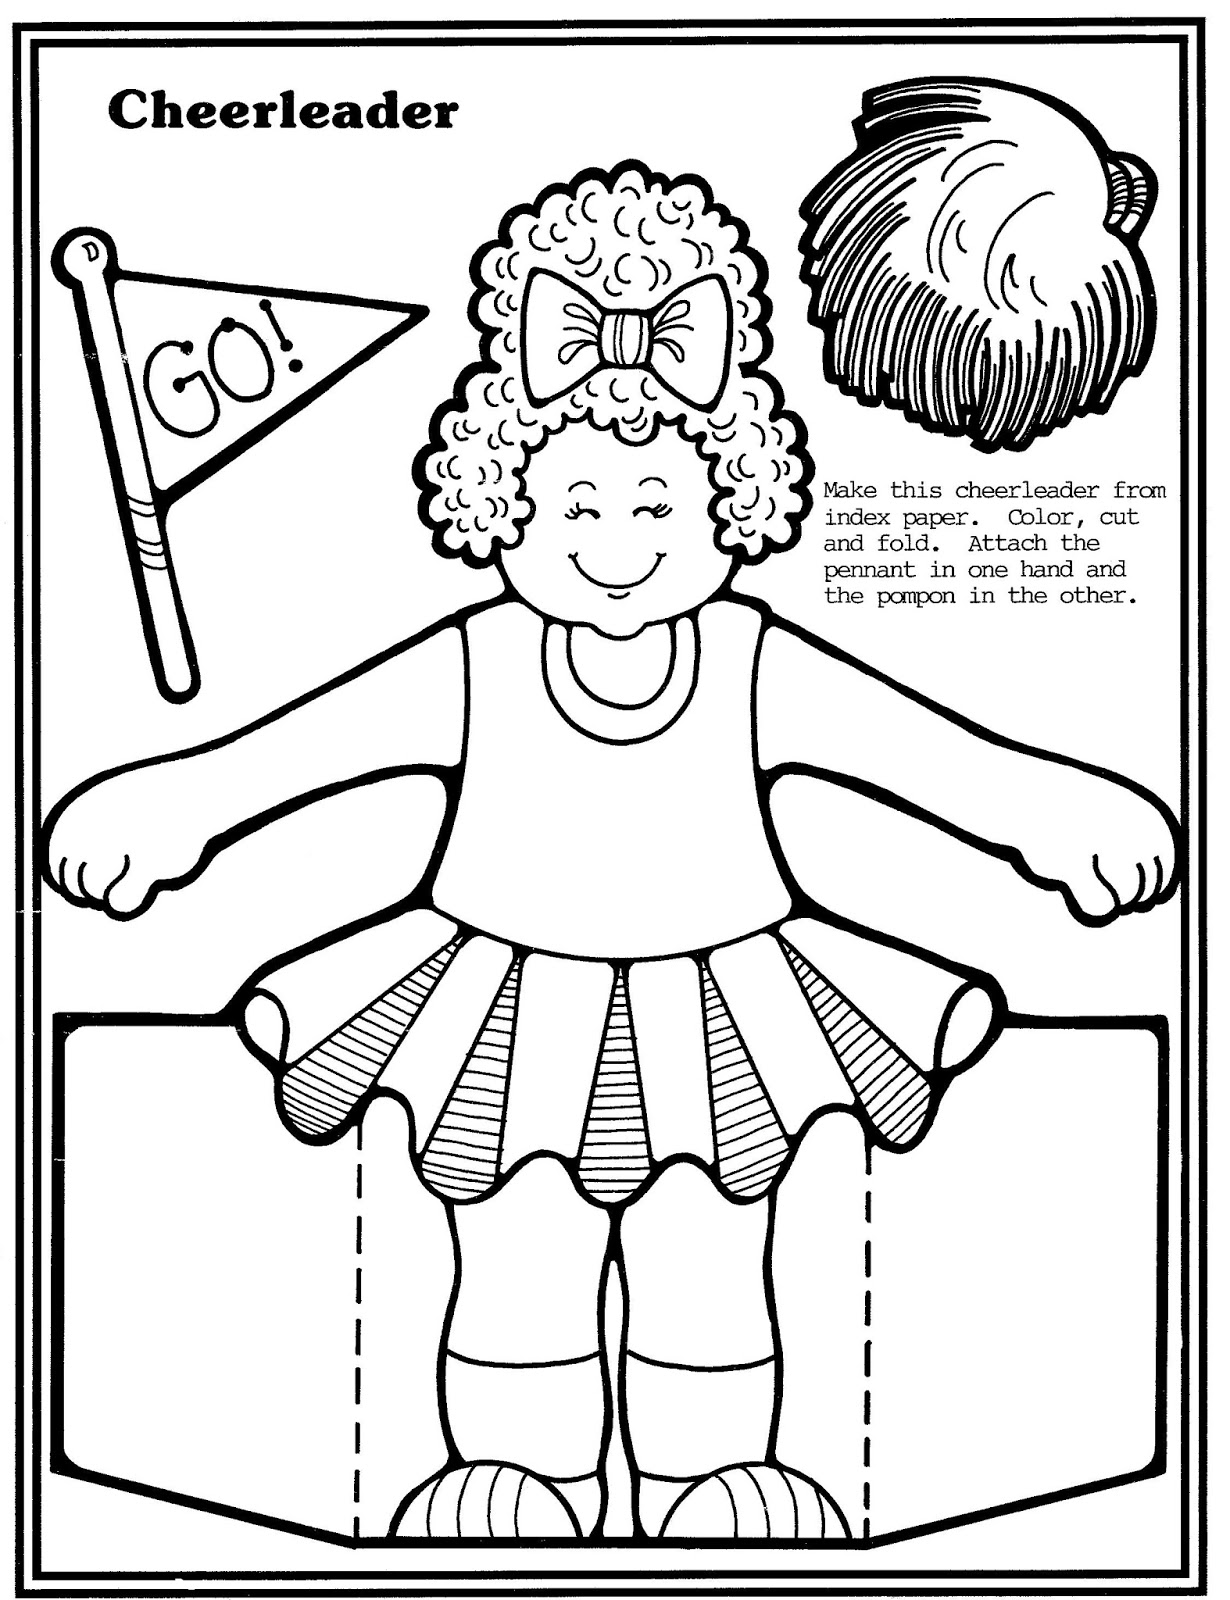 Mostly Paper Dolls Too!: Football Player and Cheerleader